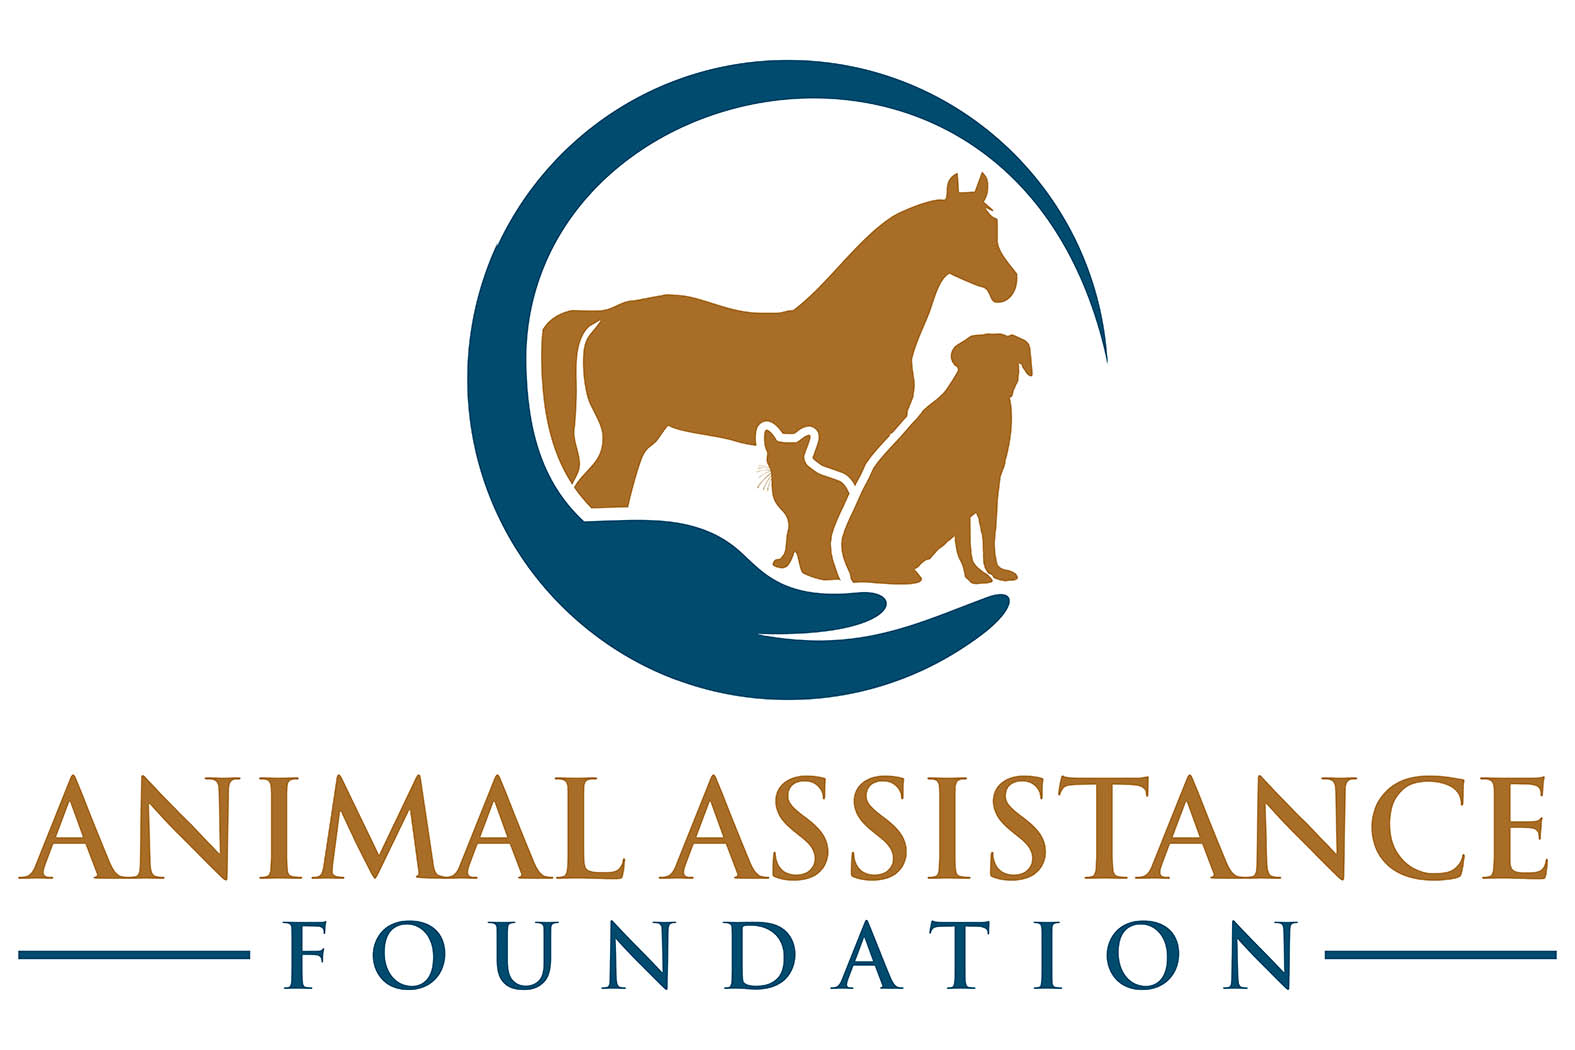 Animal Assistance Foundation Trans